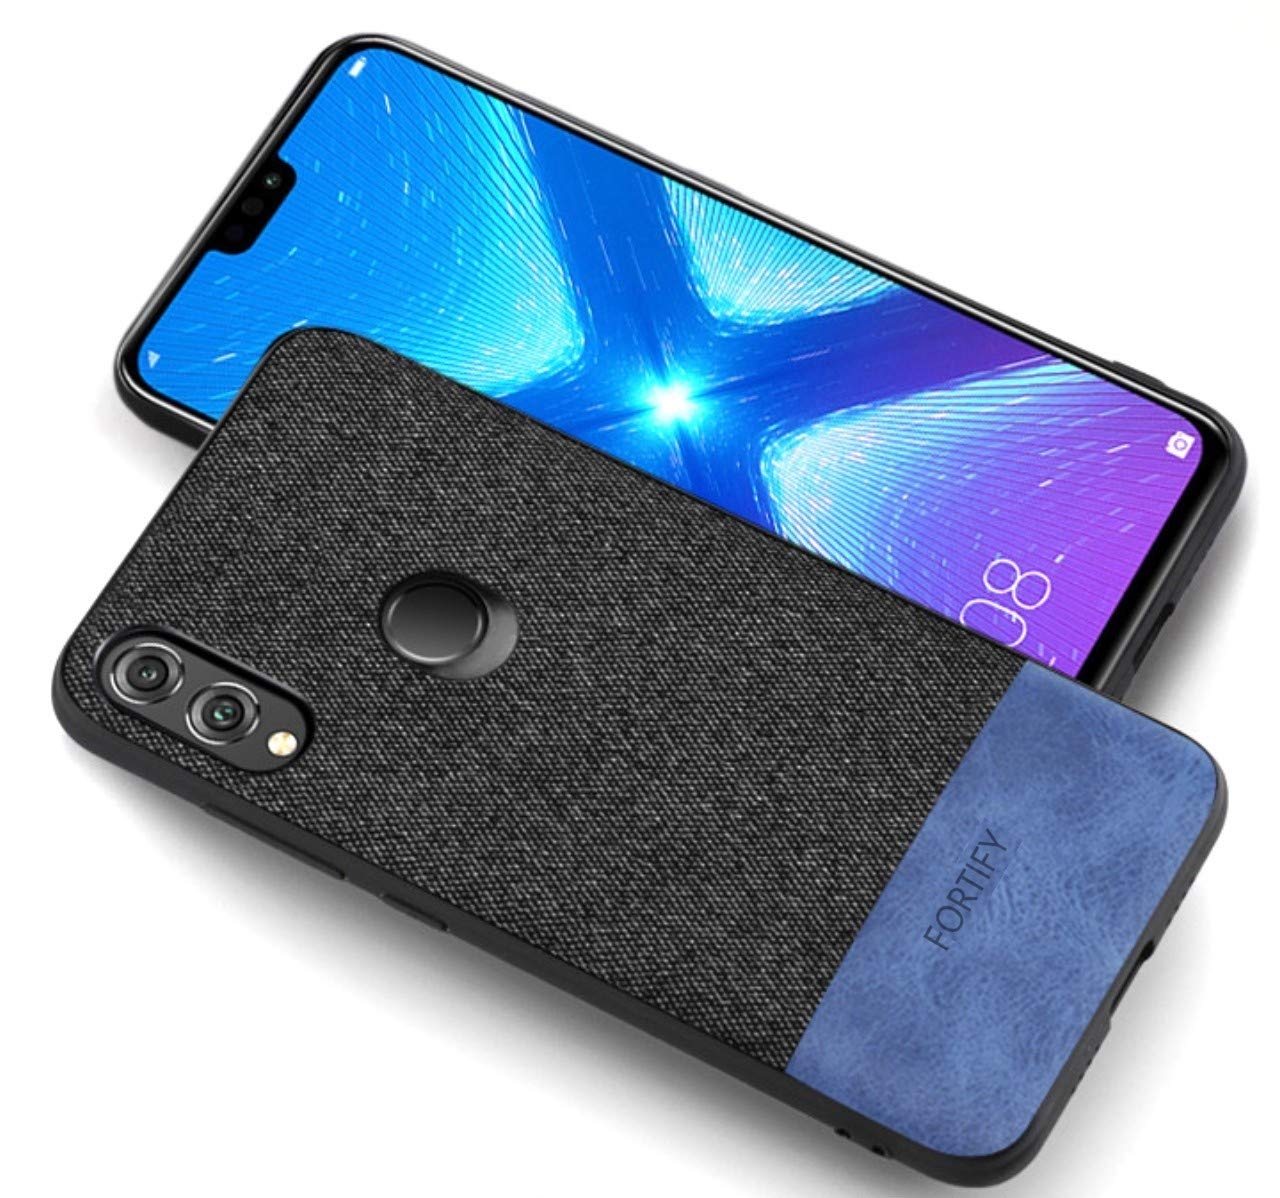 Fortify Soft Fabric Full Protective Back Cover Case for Honor 8X (Leather  Fabric Series, Black and Blue)